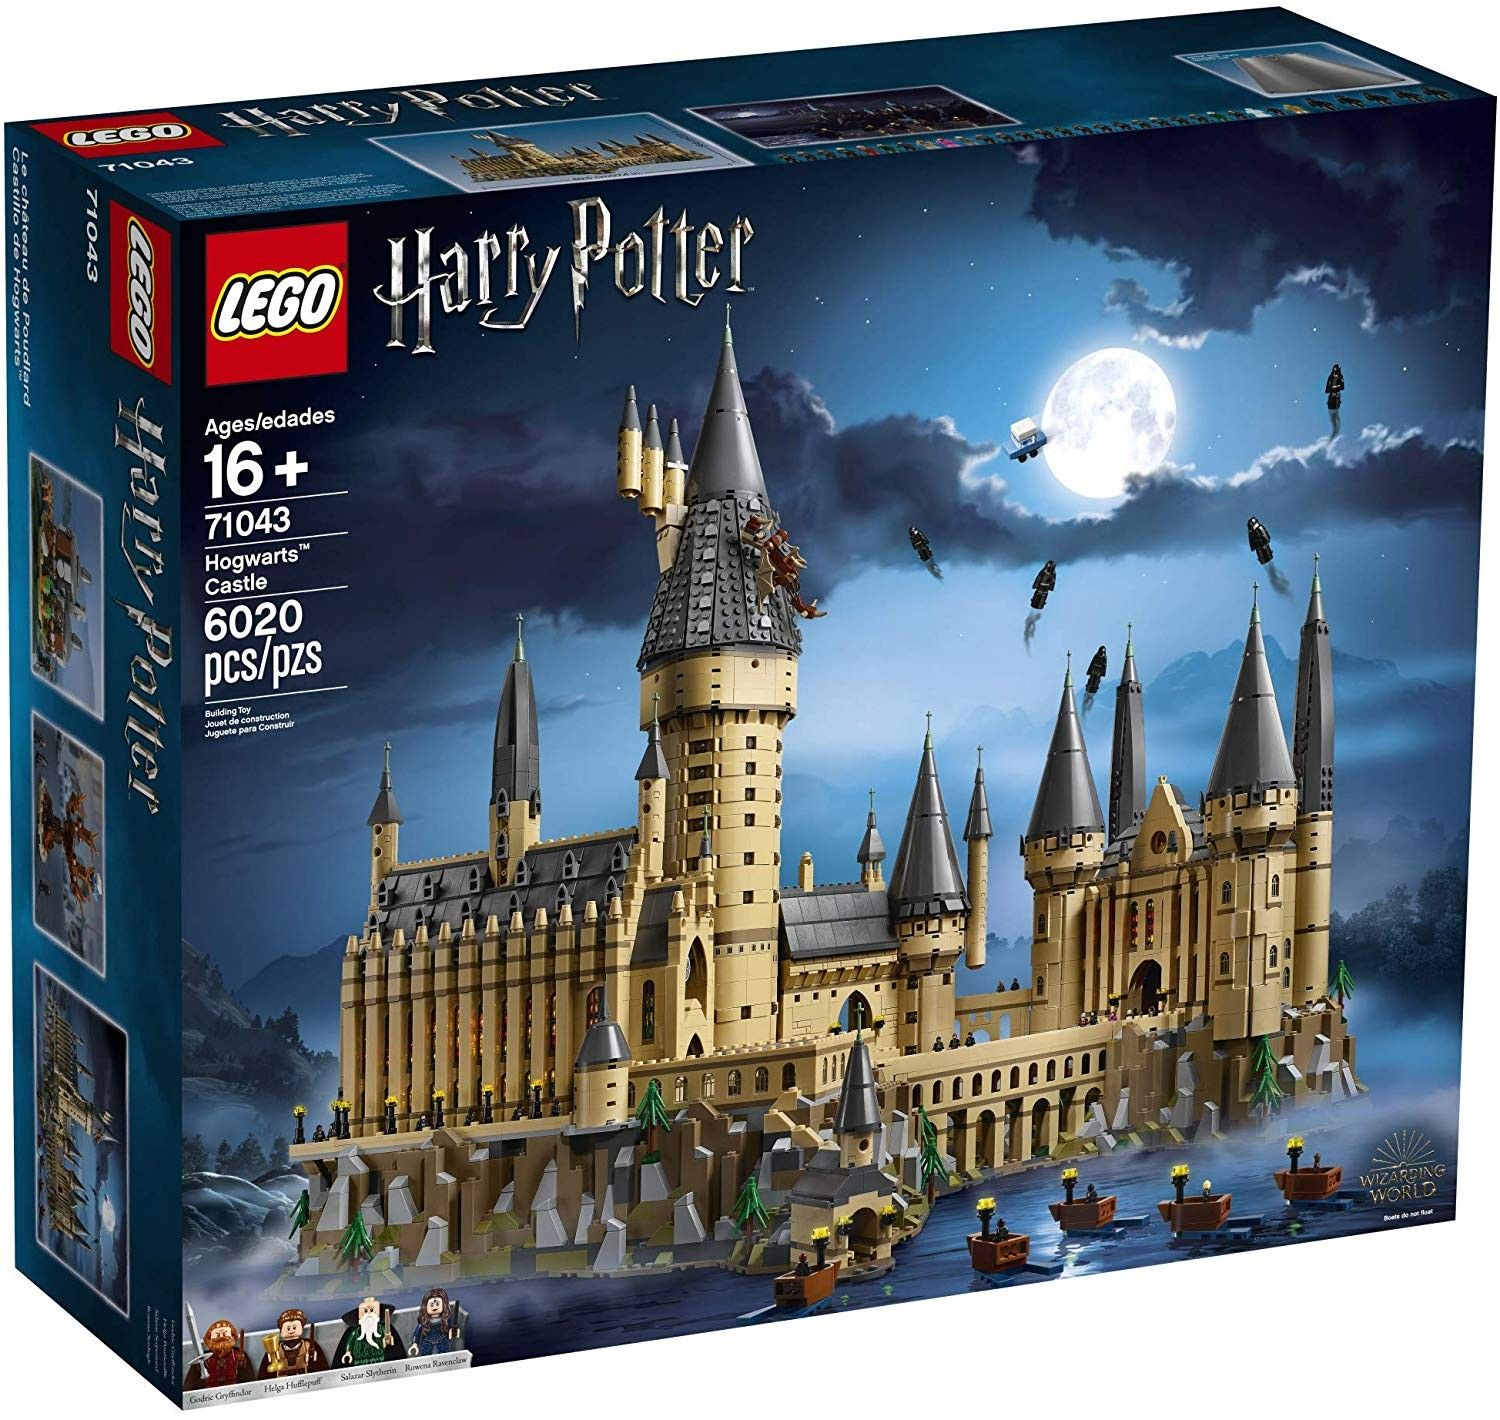 Children Can Build A Hogwarts Castle Replica Complete With A Host Of Harry Potter Characters Including 4 Harry Potter Figures 27 Microfigures The Chamber Of S Nel 2020